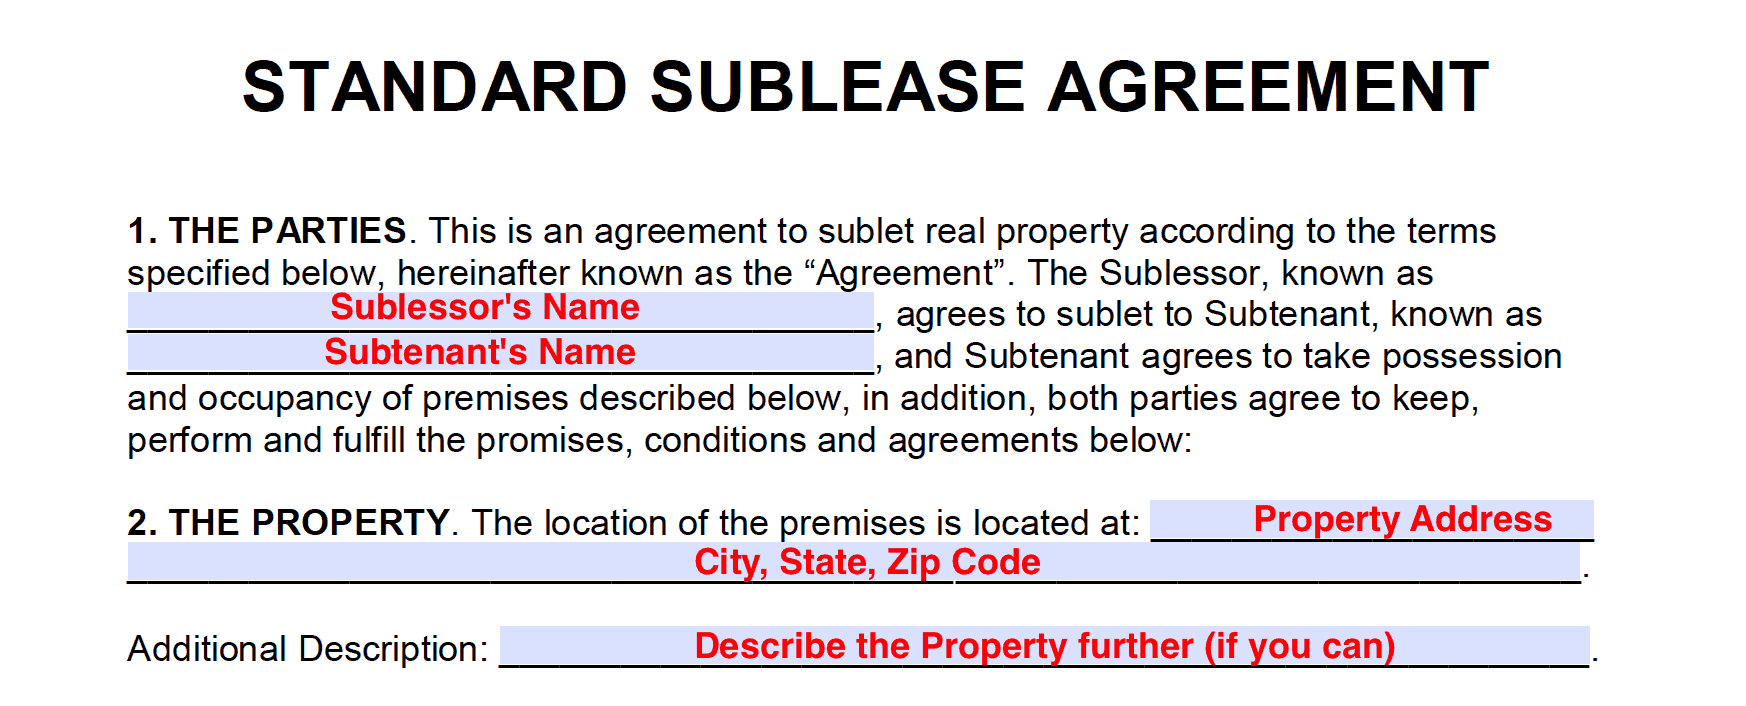 Free Sublease Agreement Templates PDF And Word Docx - Sublease agreement template word